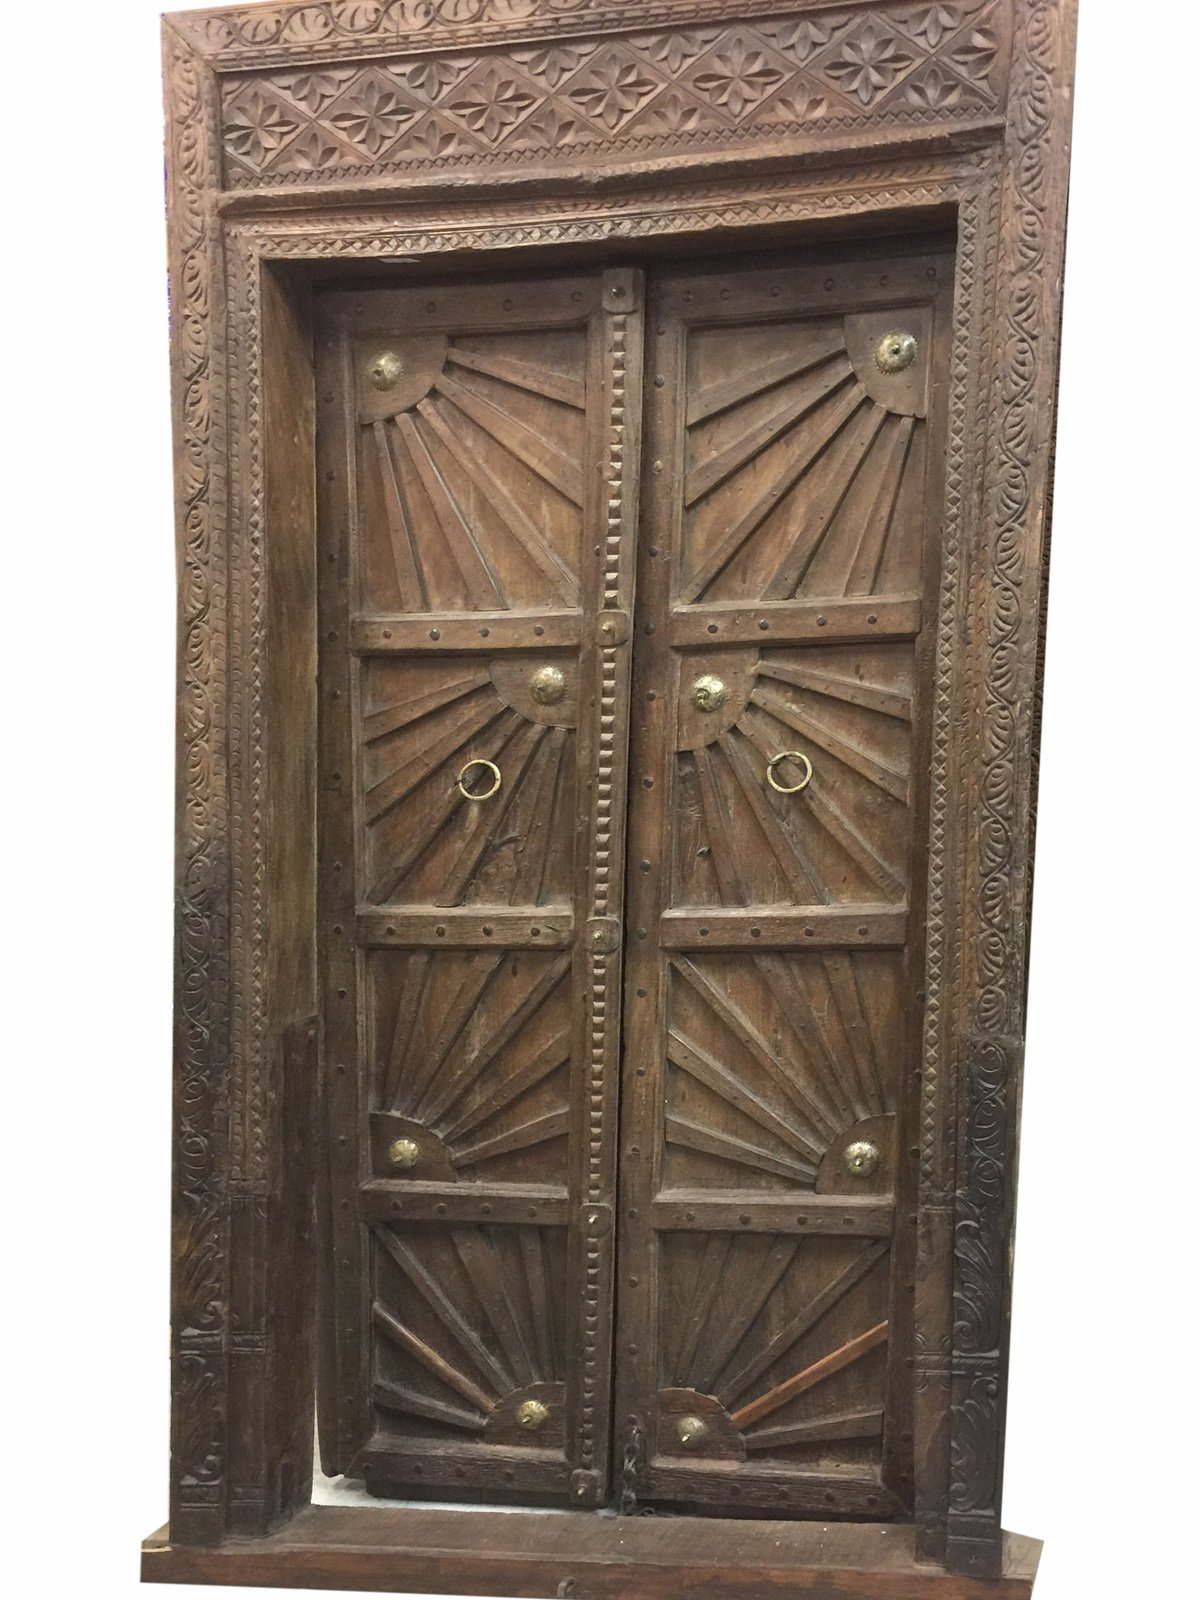 Farmhouse Sunshine Antique Indian Doors Hand Carved Haveli Teak Wood Double Door & Frame Industrial Spanish Decor by Mogul Interior